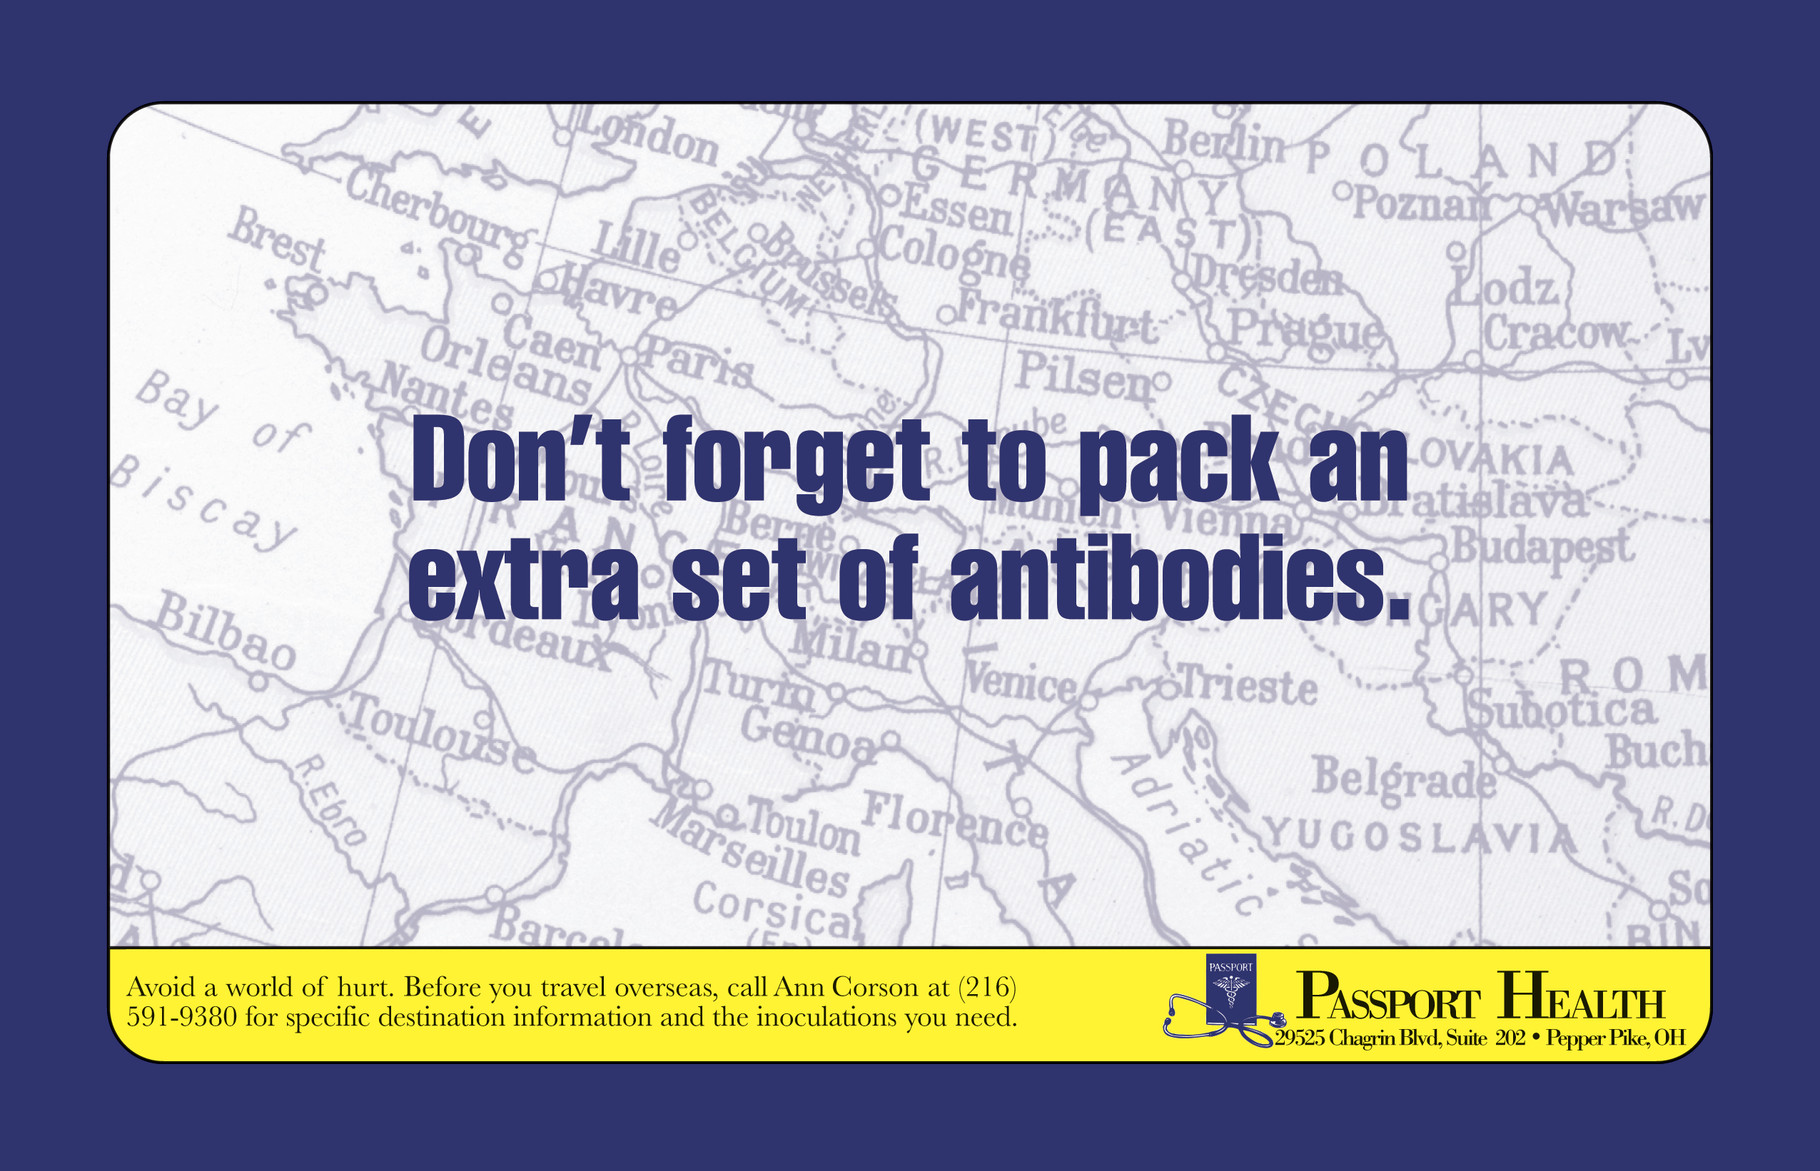 Ad & postcard for Passport Health, which provides vaccines and immunizations to travelers.